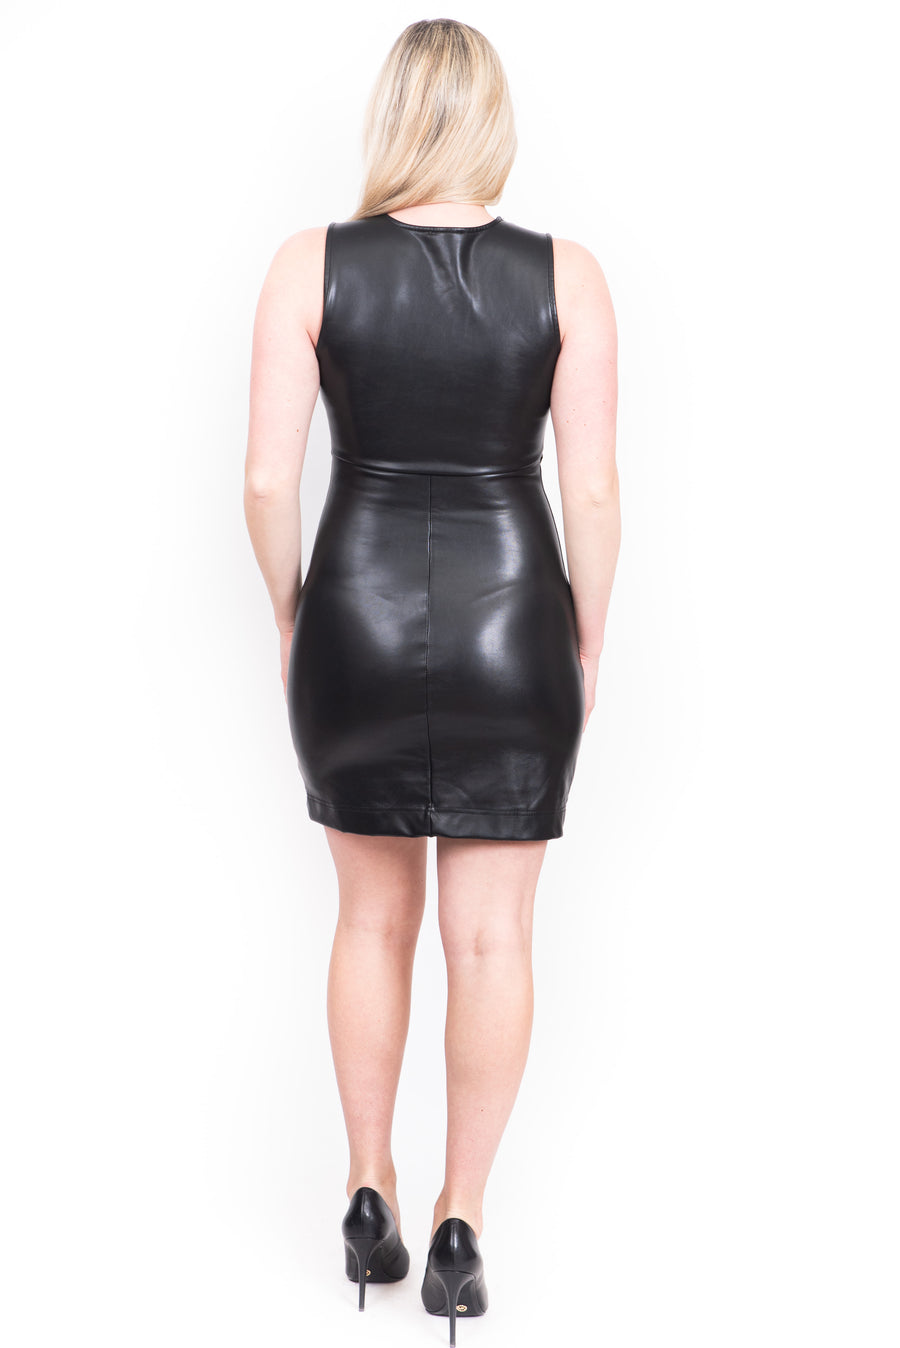 La robe en faux cuir/ Faux leather dress